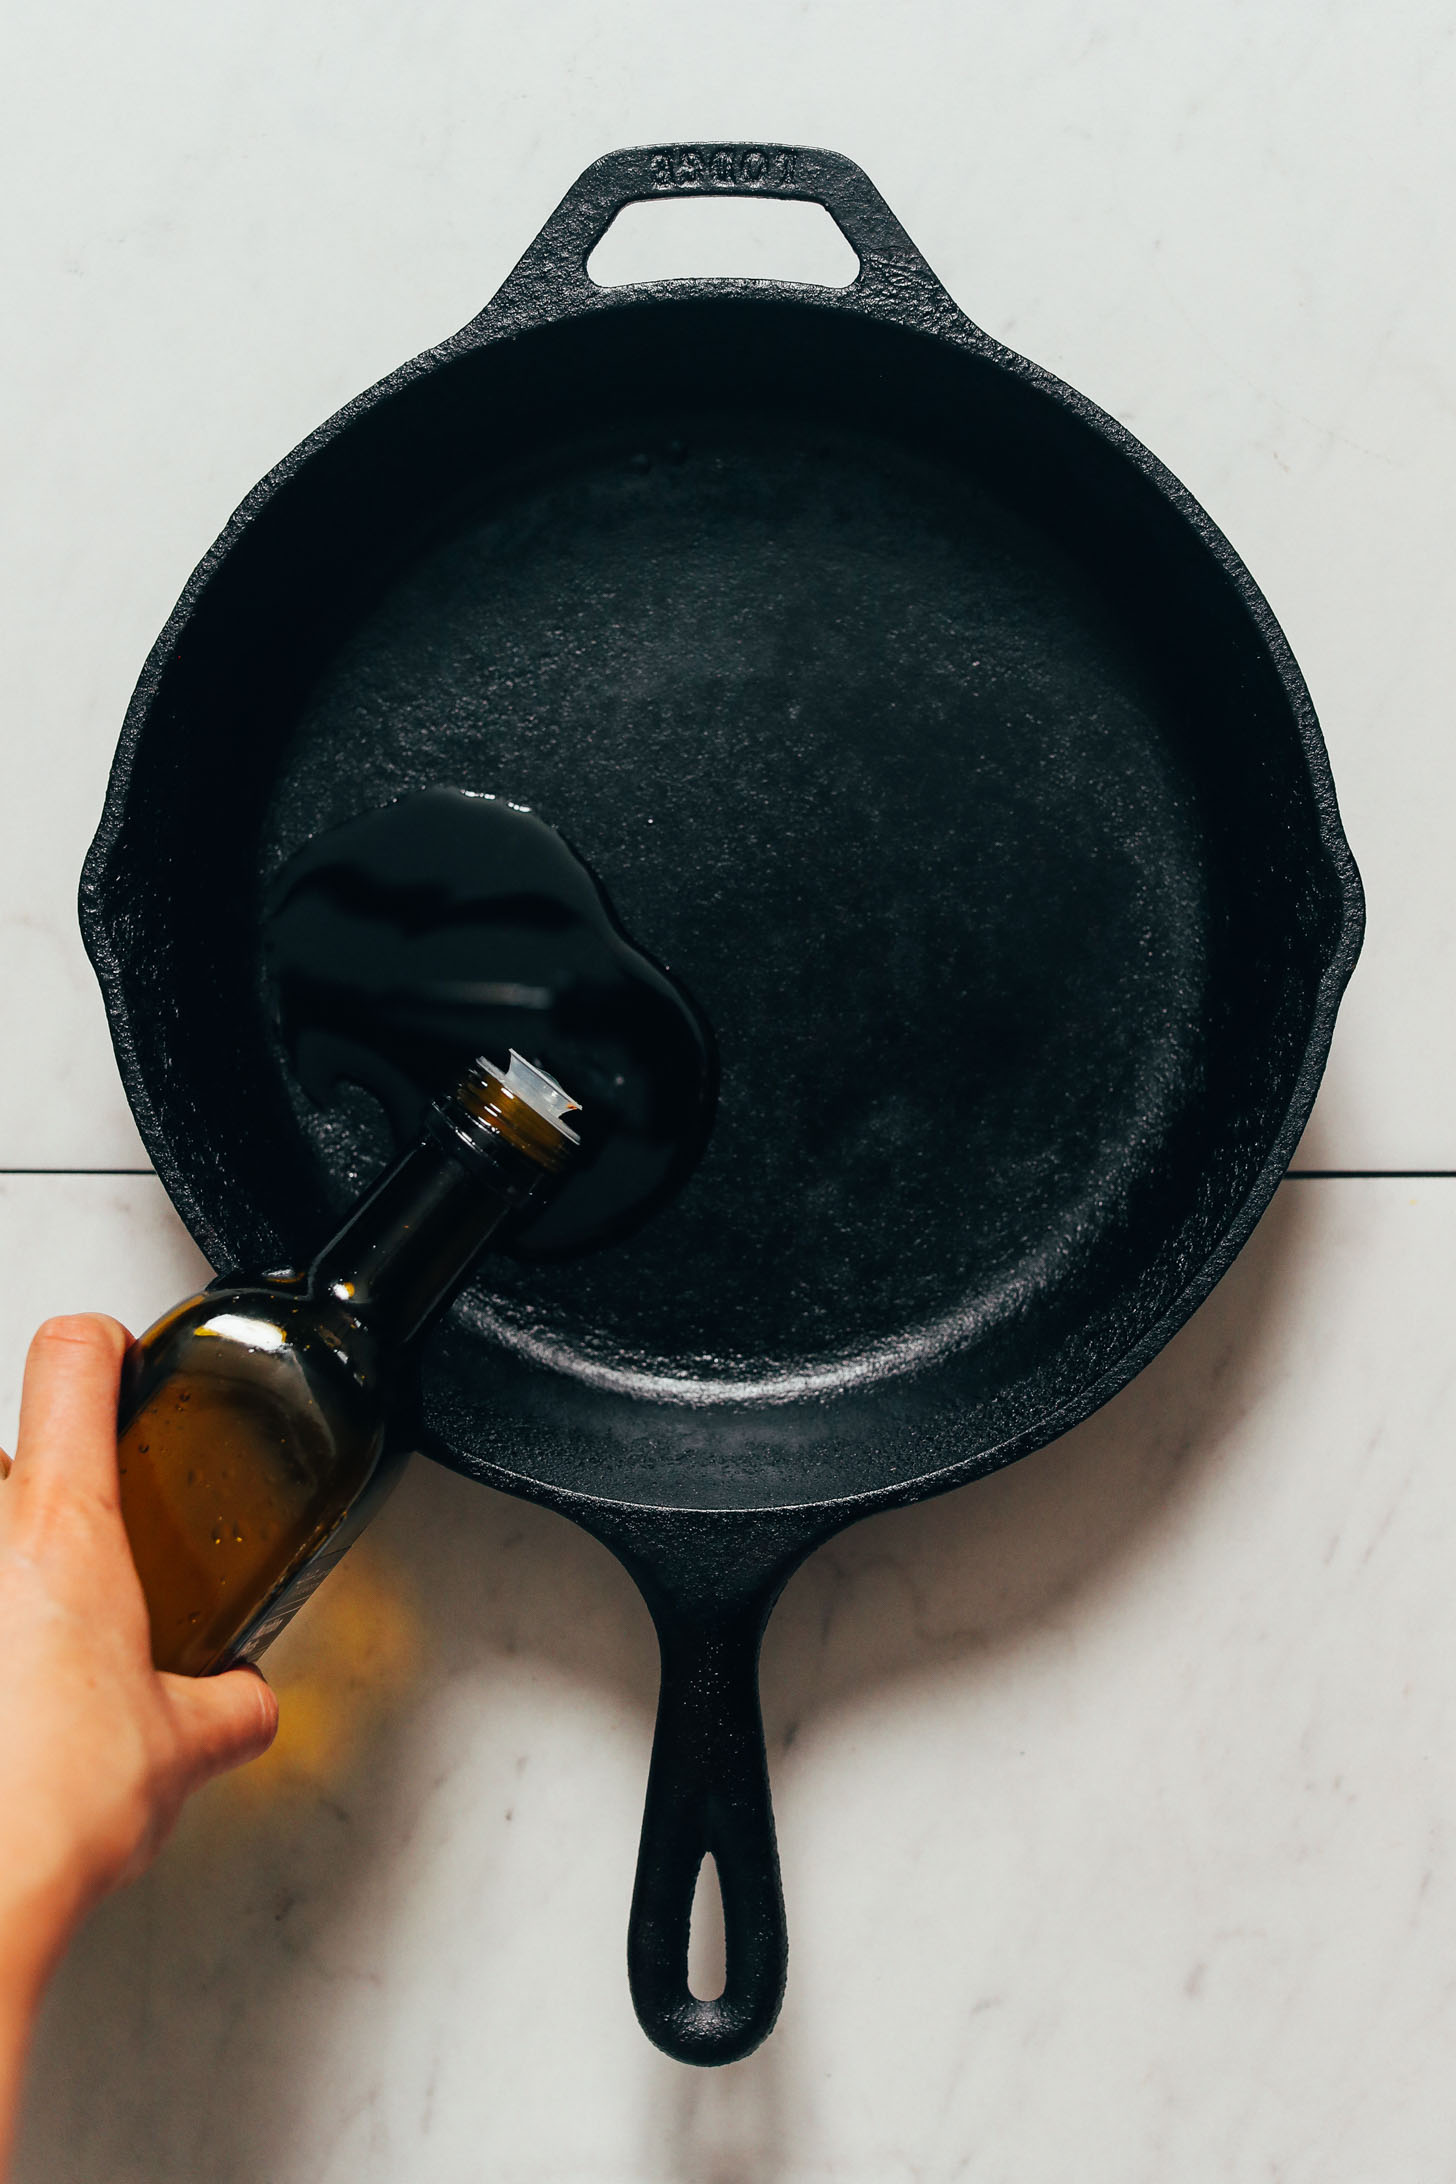 Pouring oil into a cast iron skillet